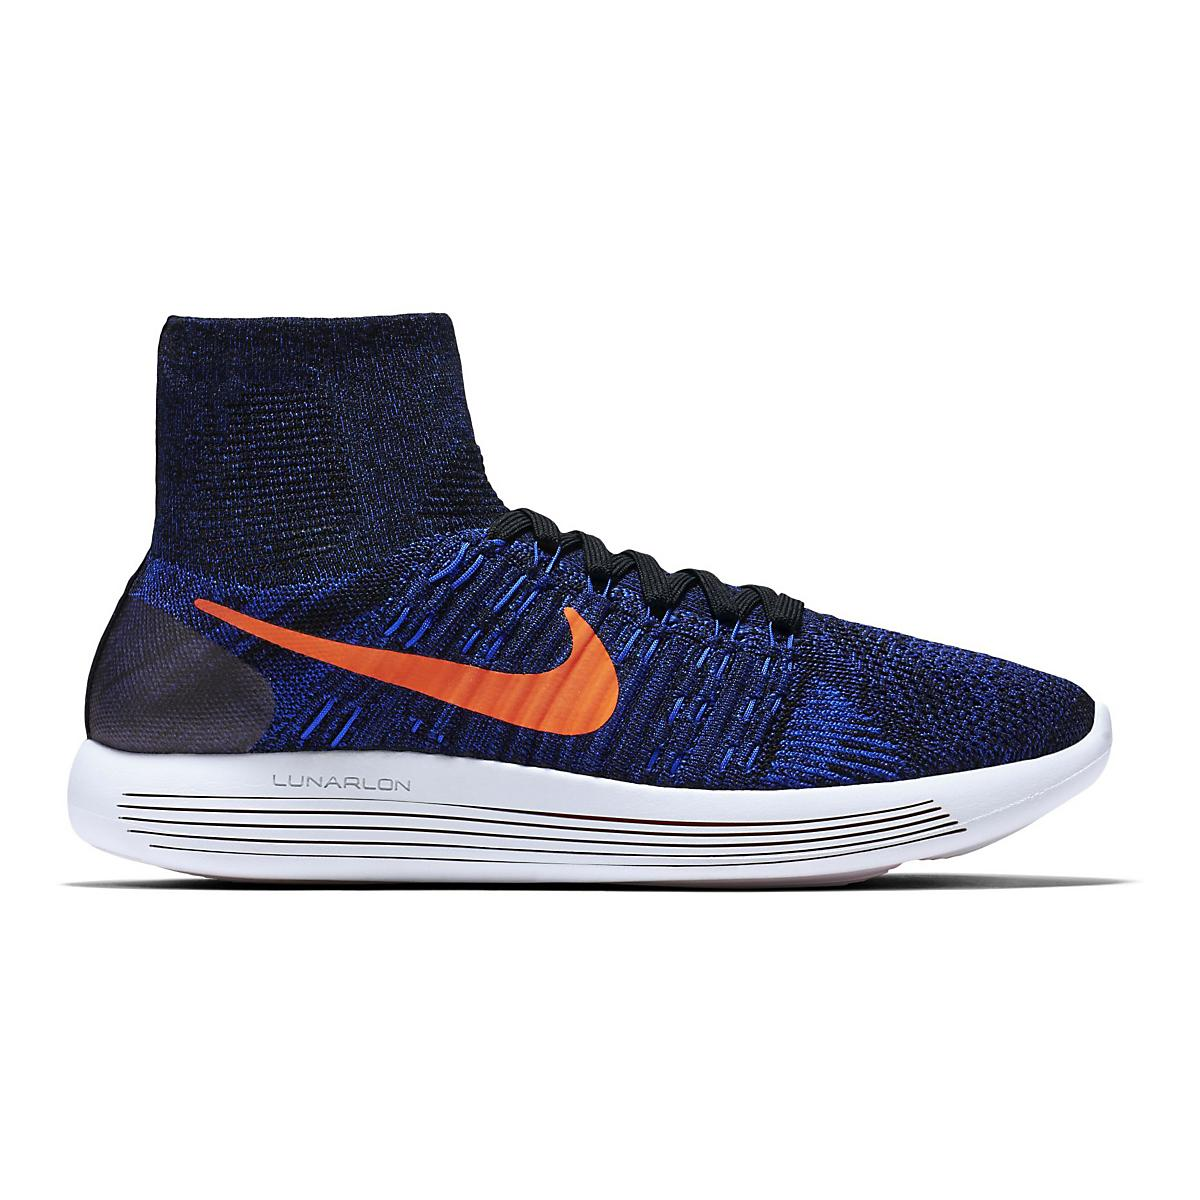 Nike LunarEpic Flyknit Mens Nike LunarEpic Flyknit Running Shoe at Road  Runner Spor ... e010efd3902b